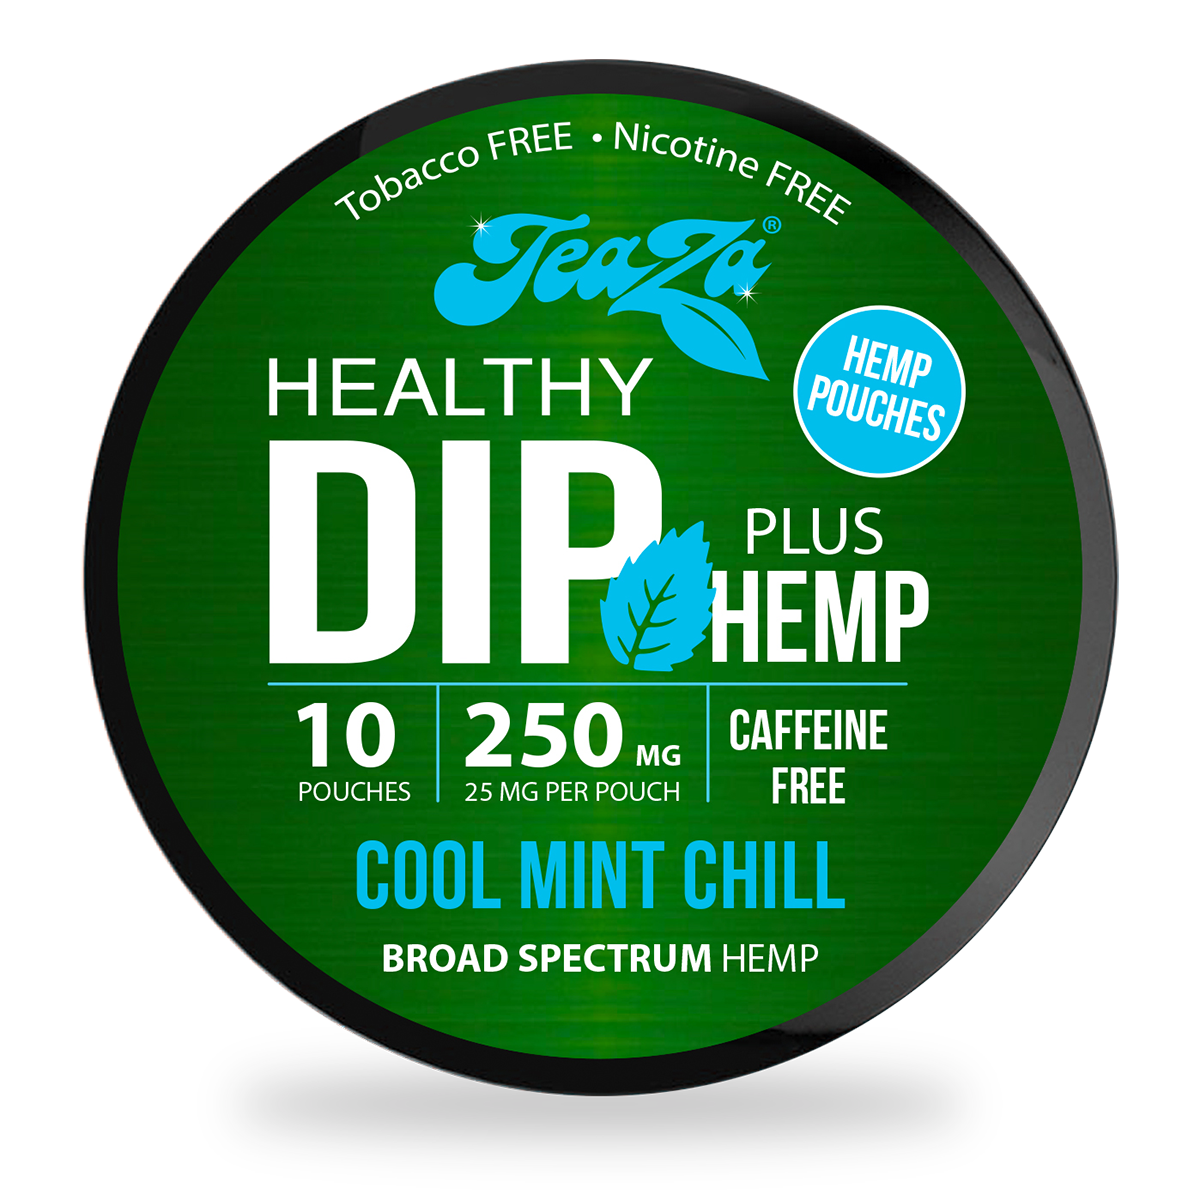 Cool Mint Chill Hemp Dip Pouches